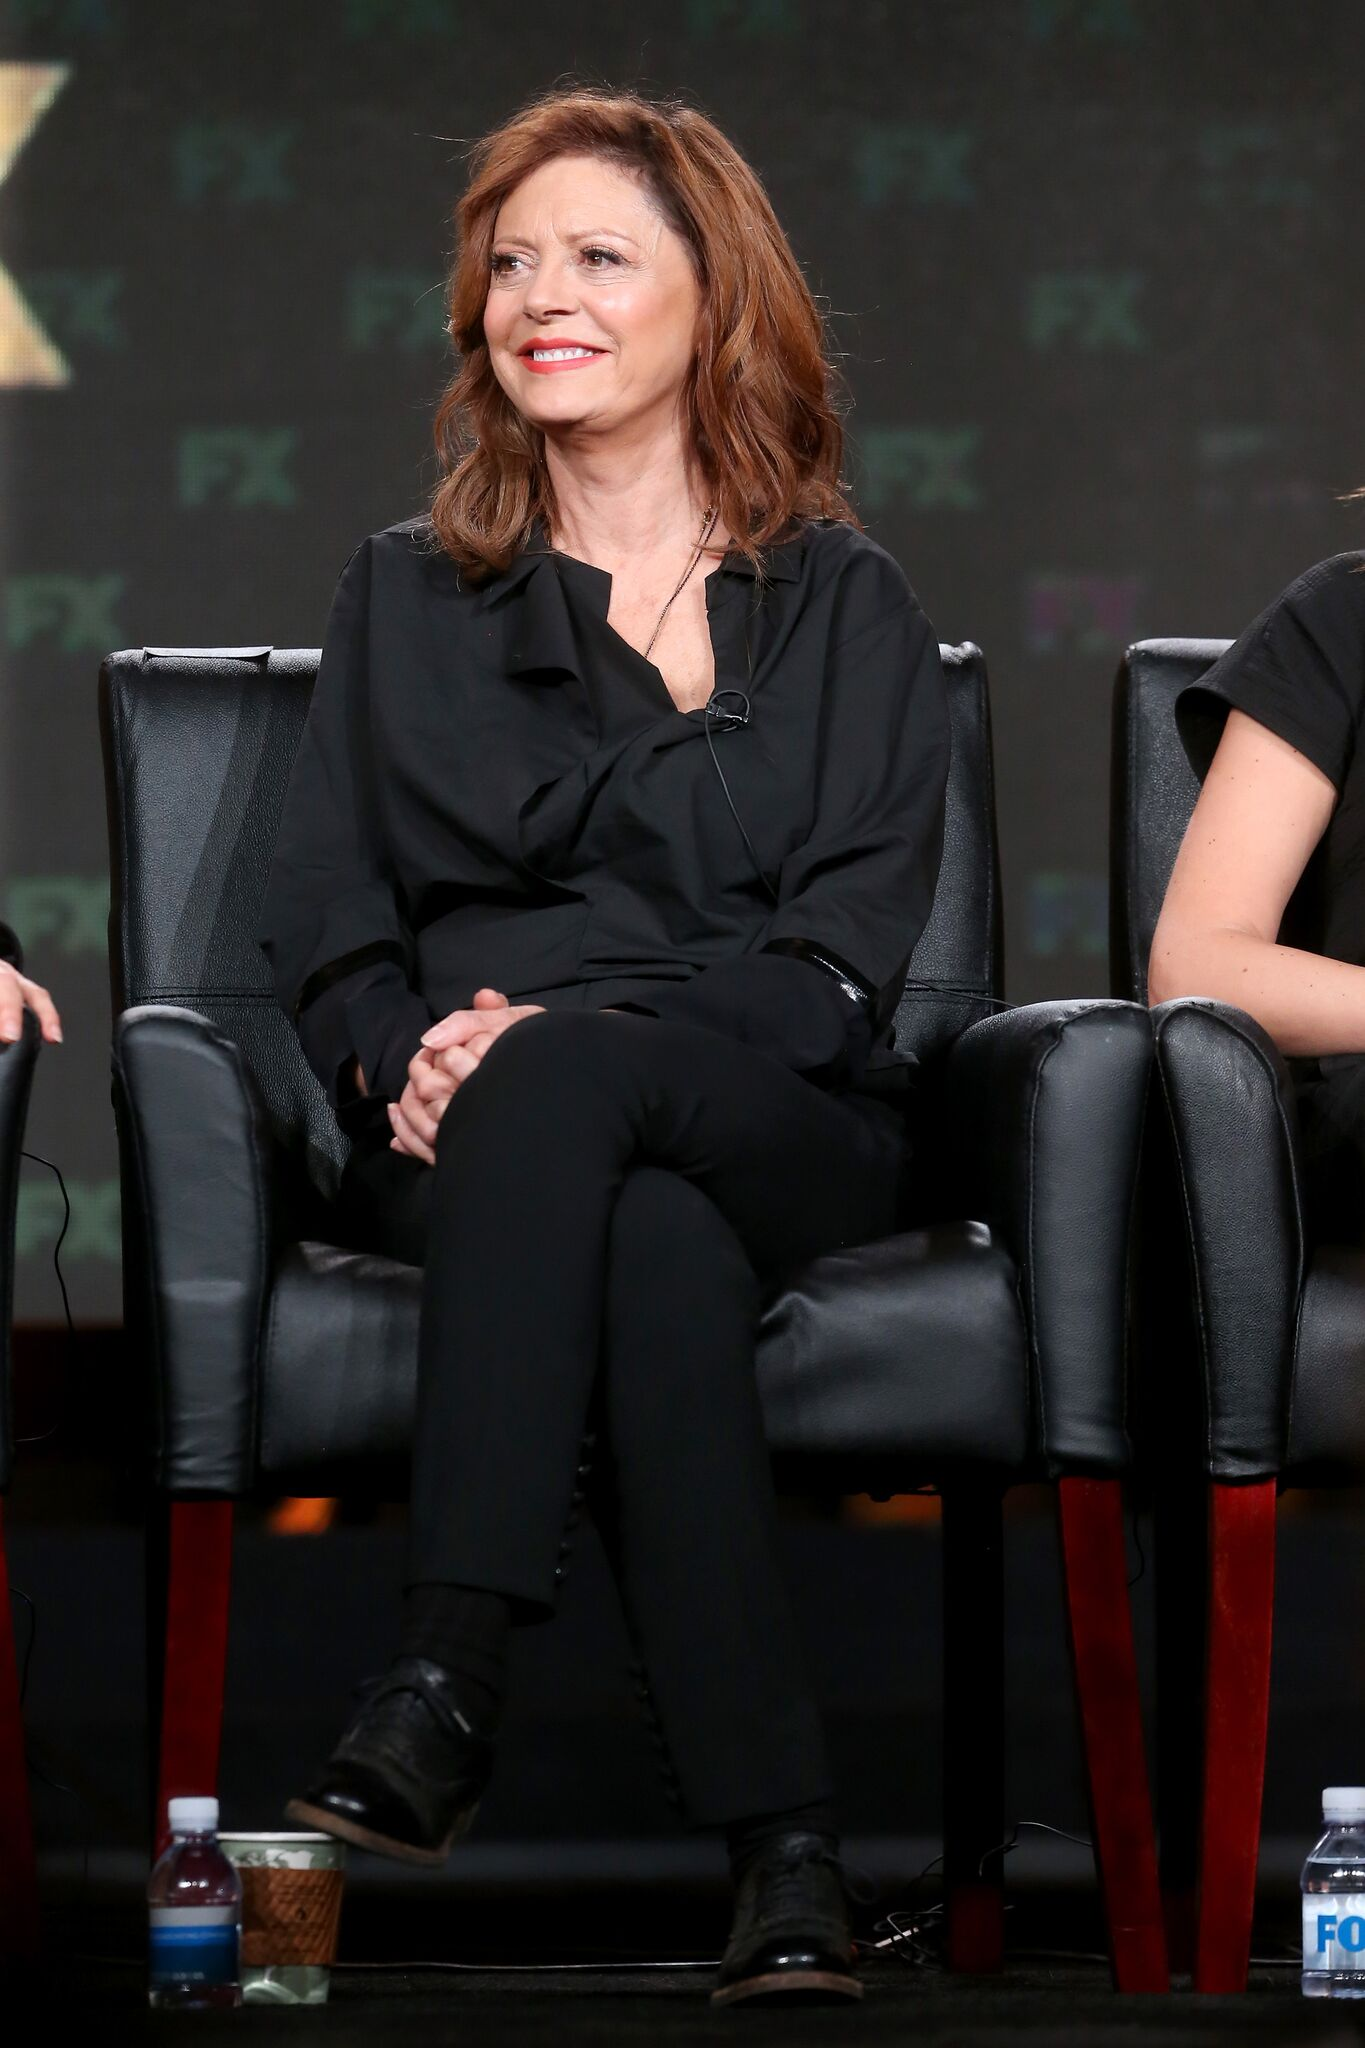 ctress Susan Sarandon of the television show 'Feud' speaks onstage during the FX portion of the 2017 Winter Television Critics Association Press Tour | Getty Images